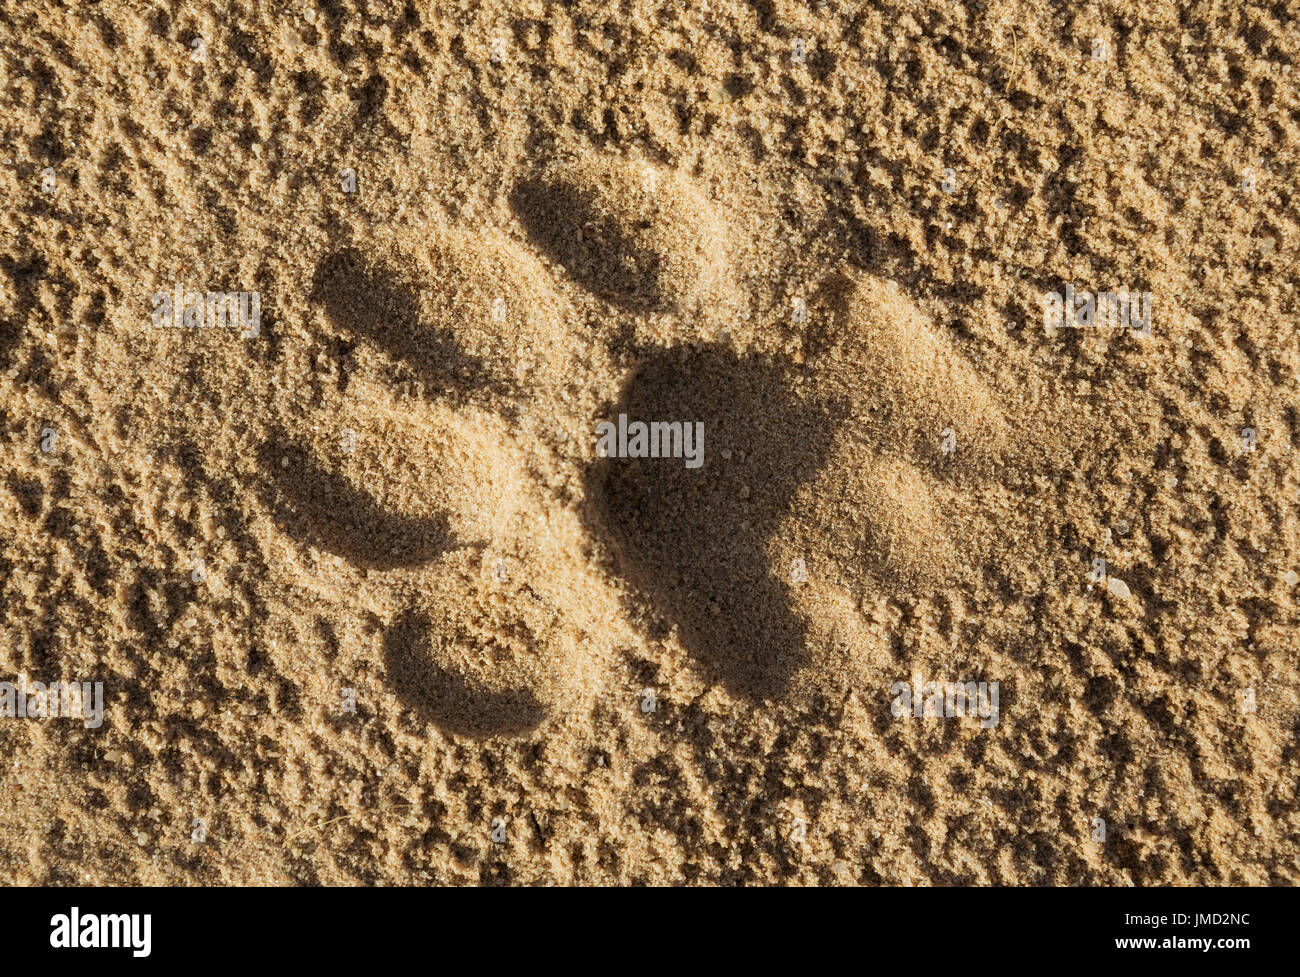 Lion (Panthera leo), female foodprint on the dust road - Stock Image